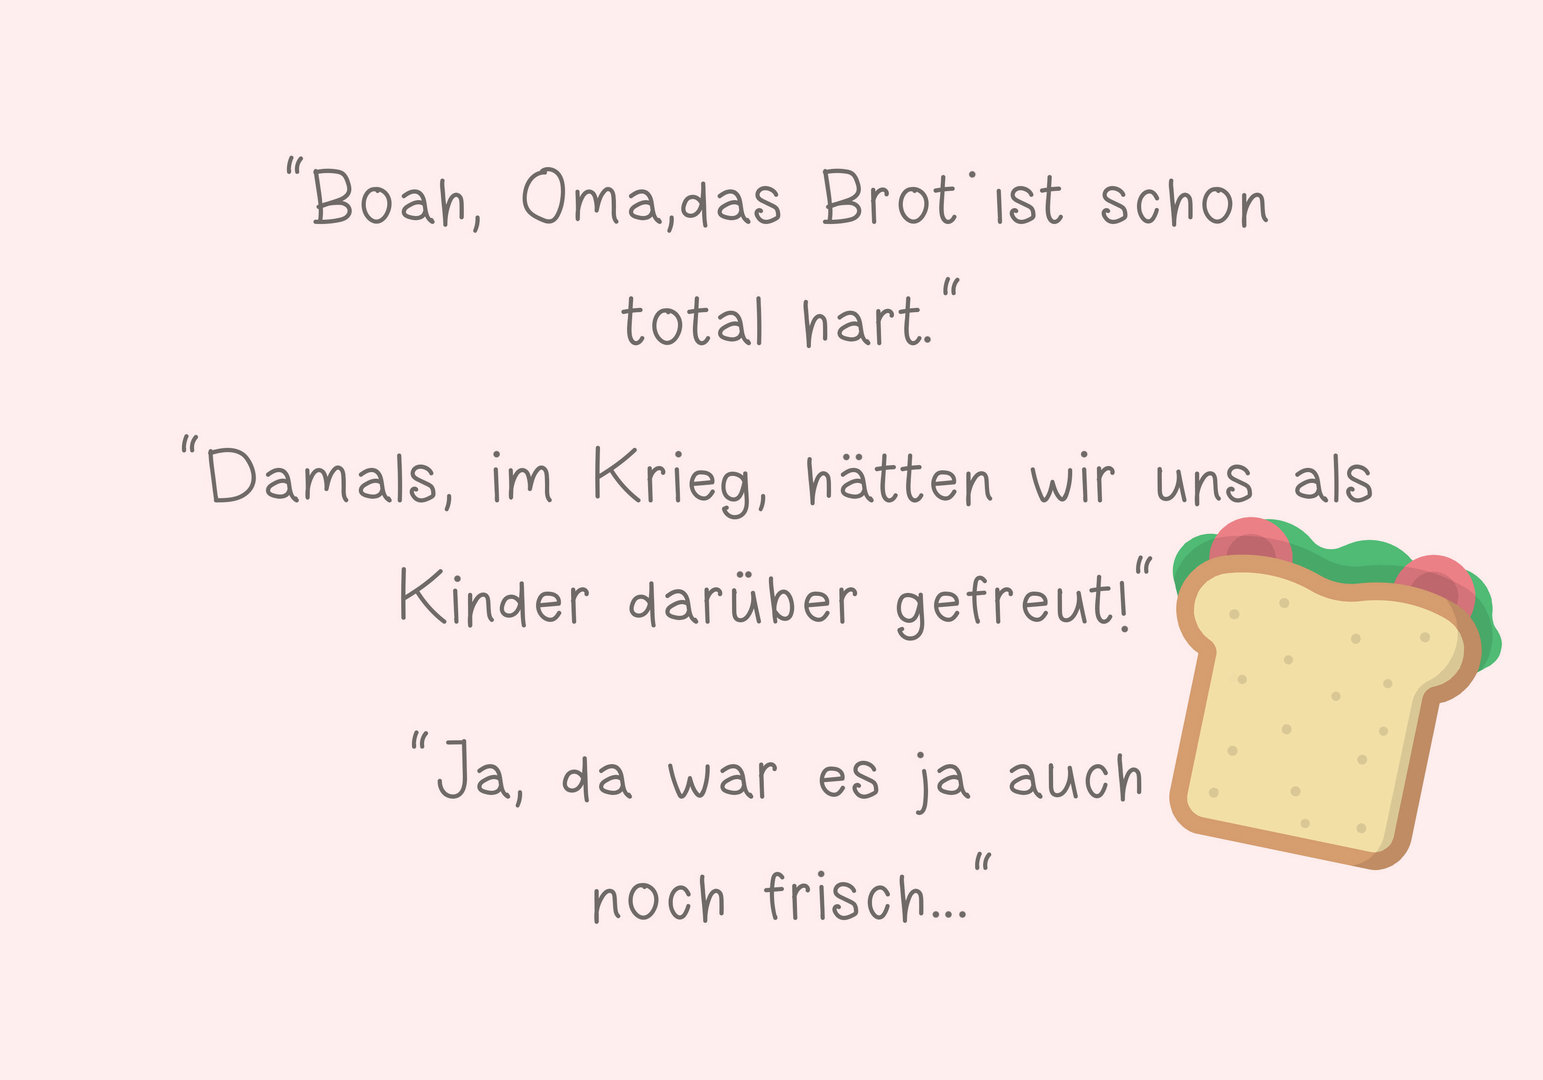 Boah, Oma, das Brot ist schon total hart